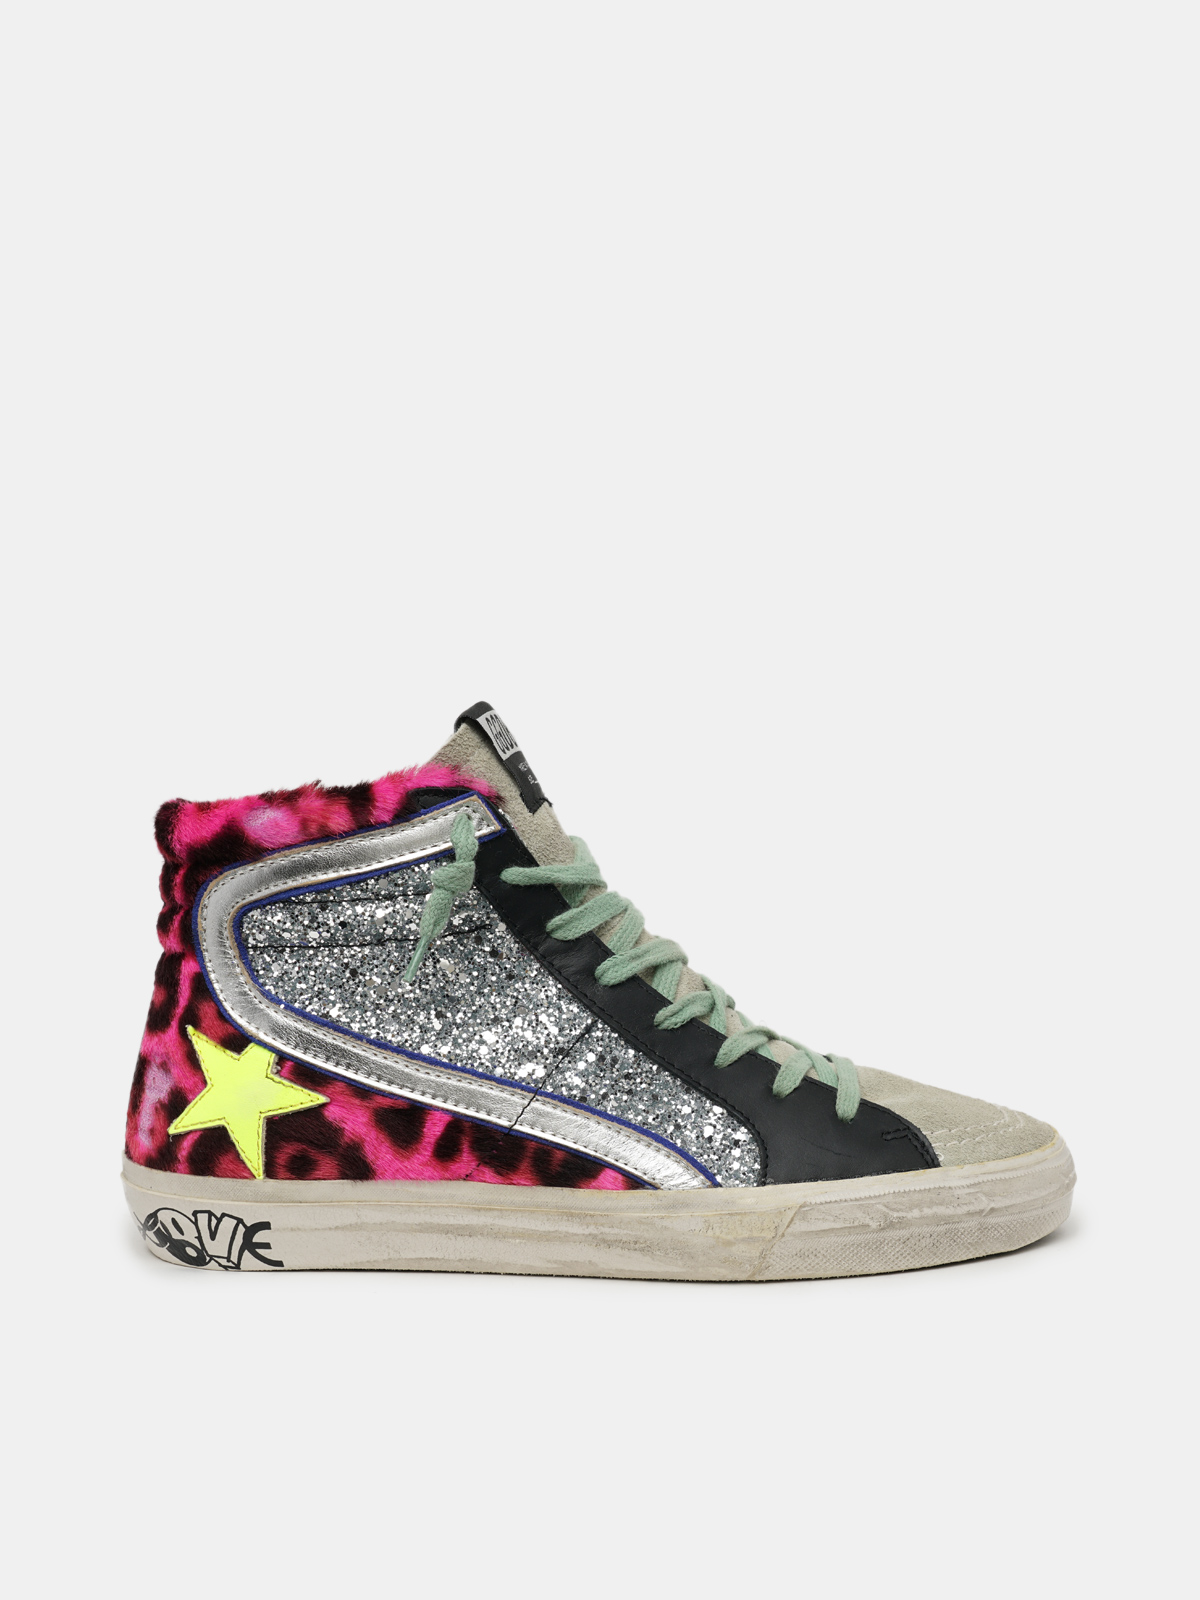 Golden Goose - Francy sneakers with leopard-print pony skin upper and silver glitter inserts   in